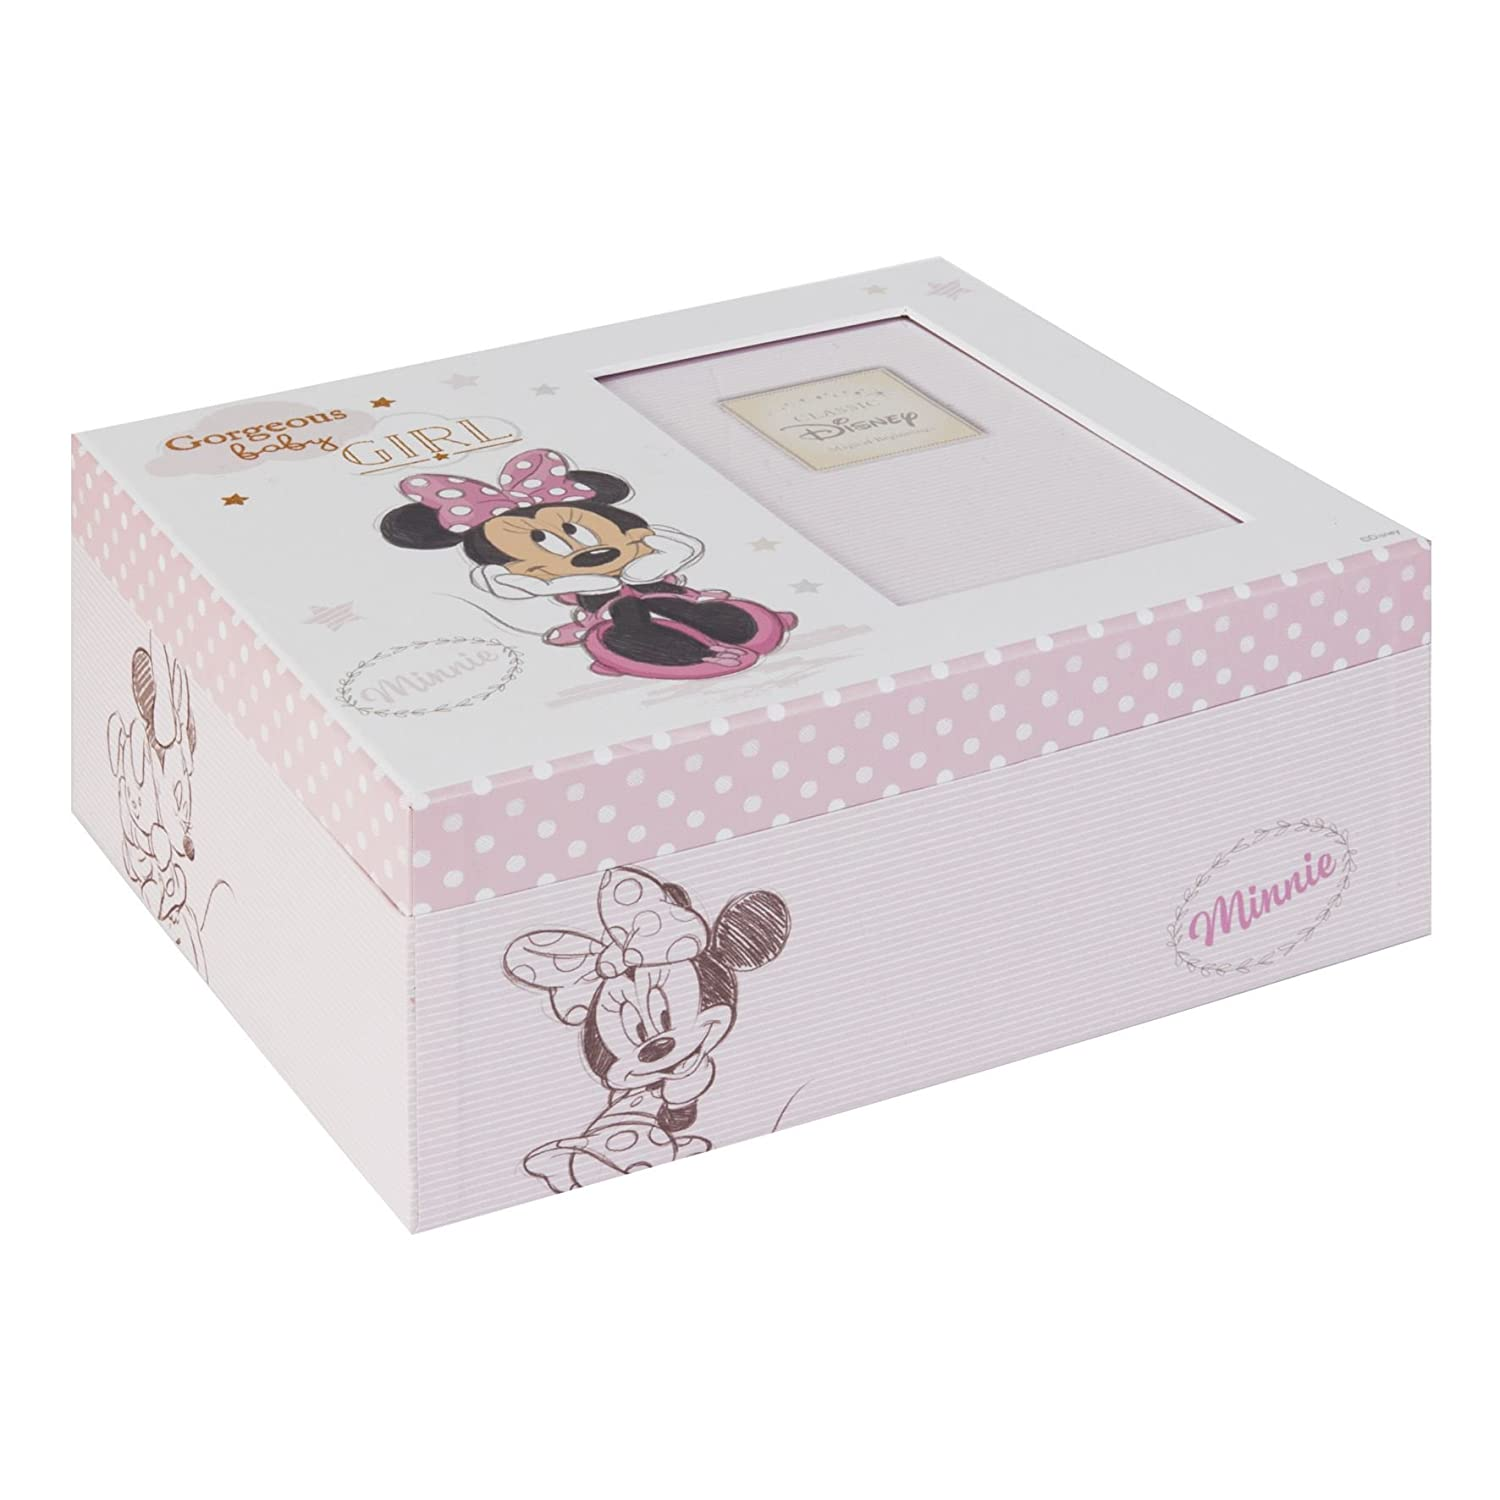 Disney Baby Magical Beginnings Keepsake Box Minnie Mouse Baby Girl Widdop & Co